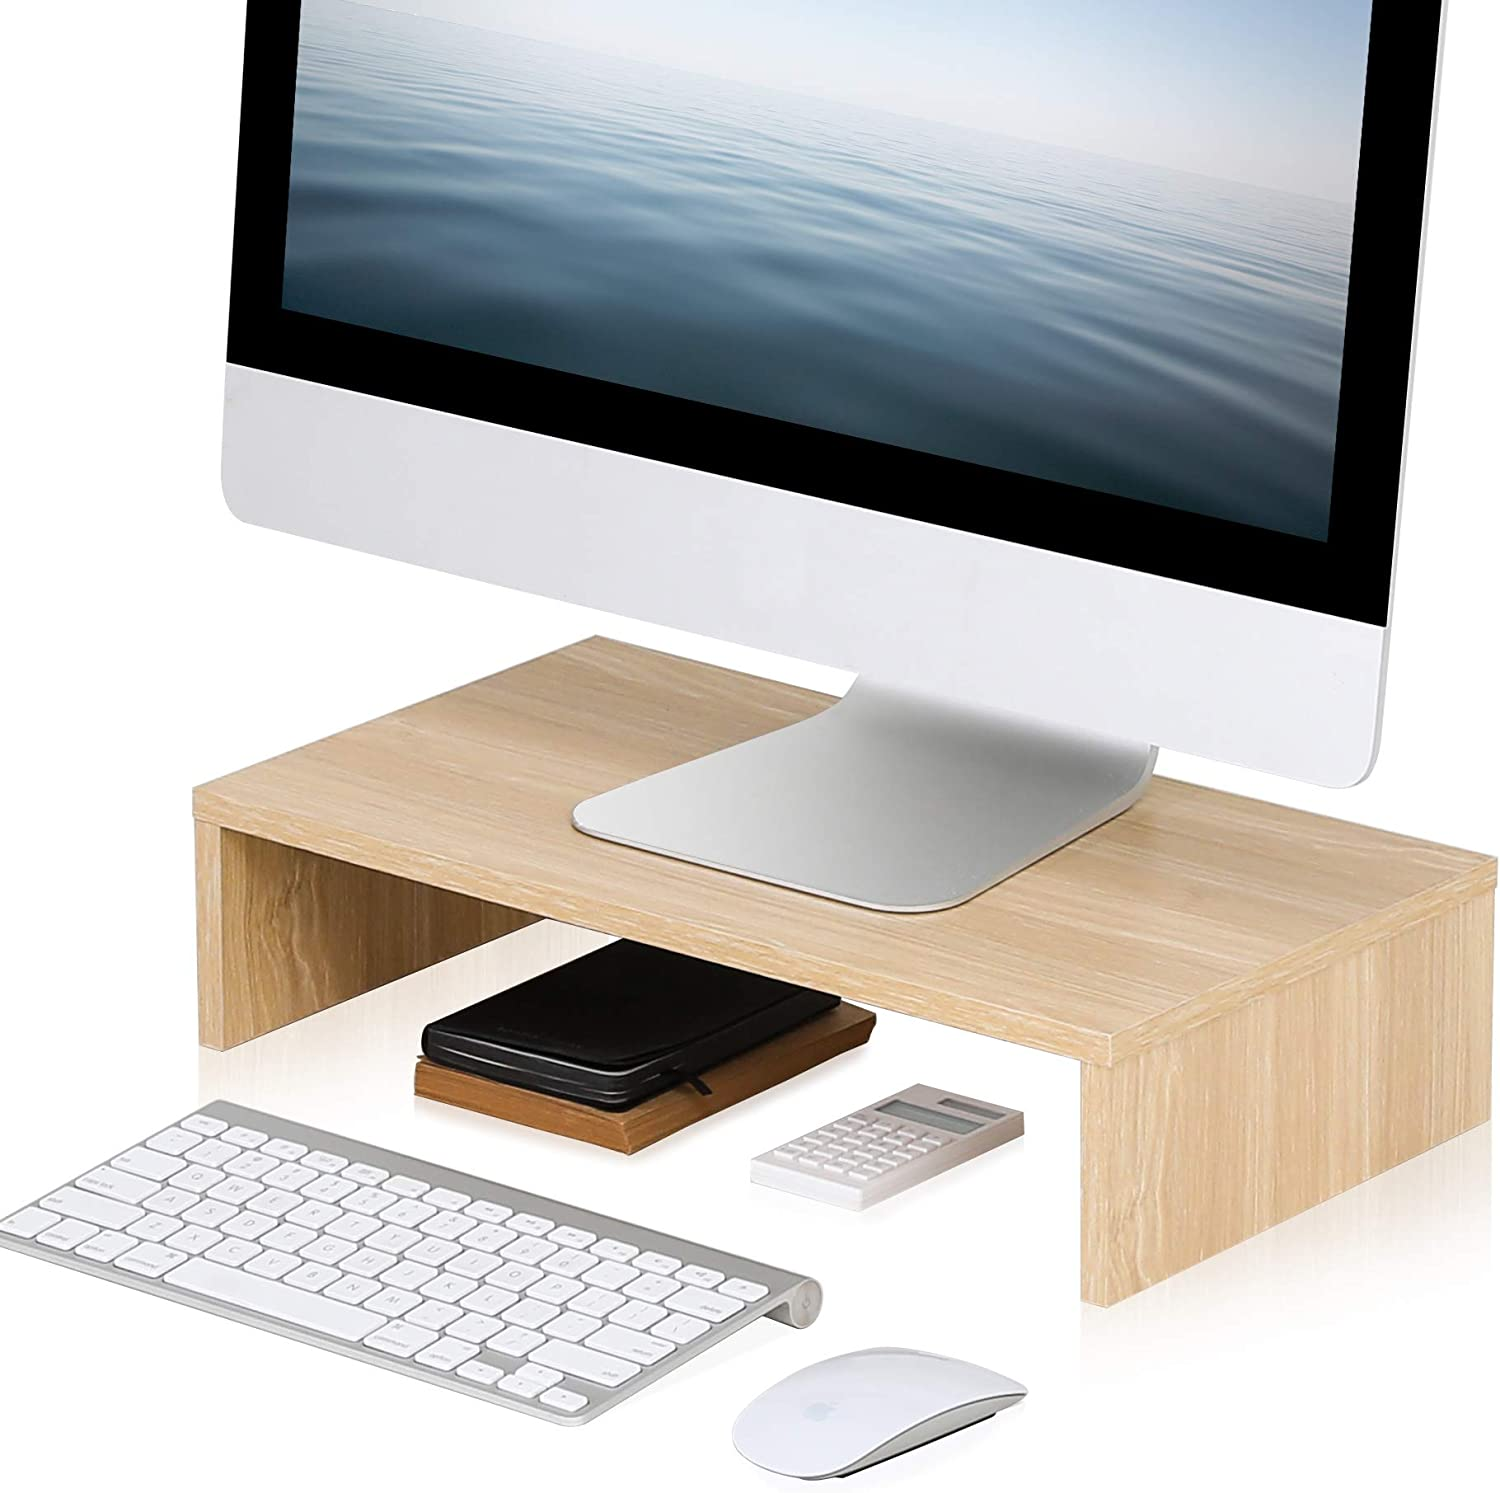 FITUEYES Computer Monitor Riser Laptop Desktop Stand for Monitors DT104201WO